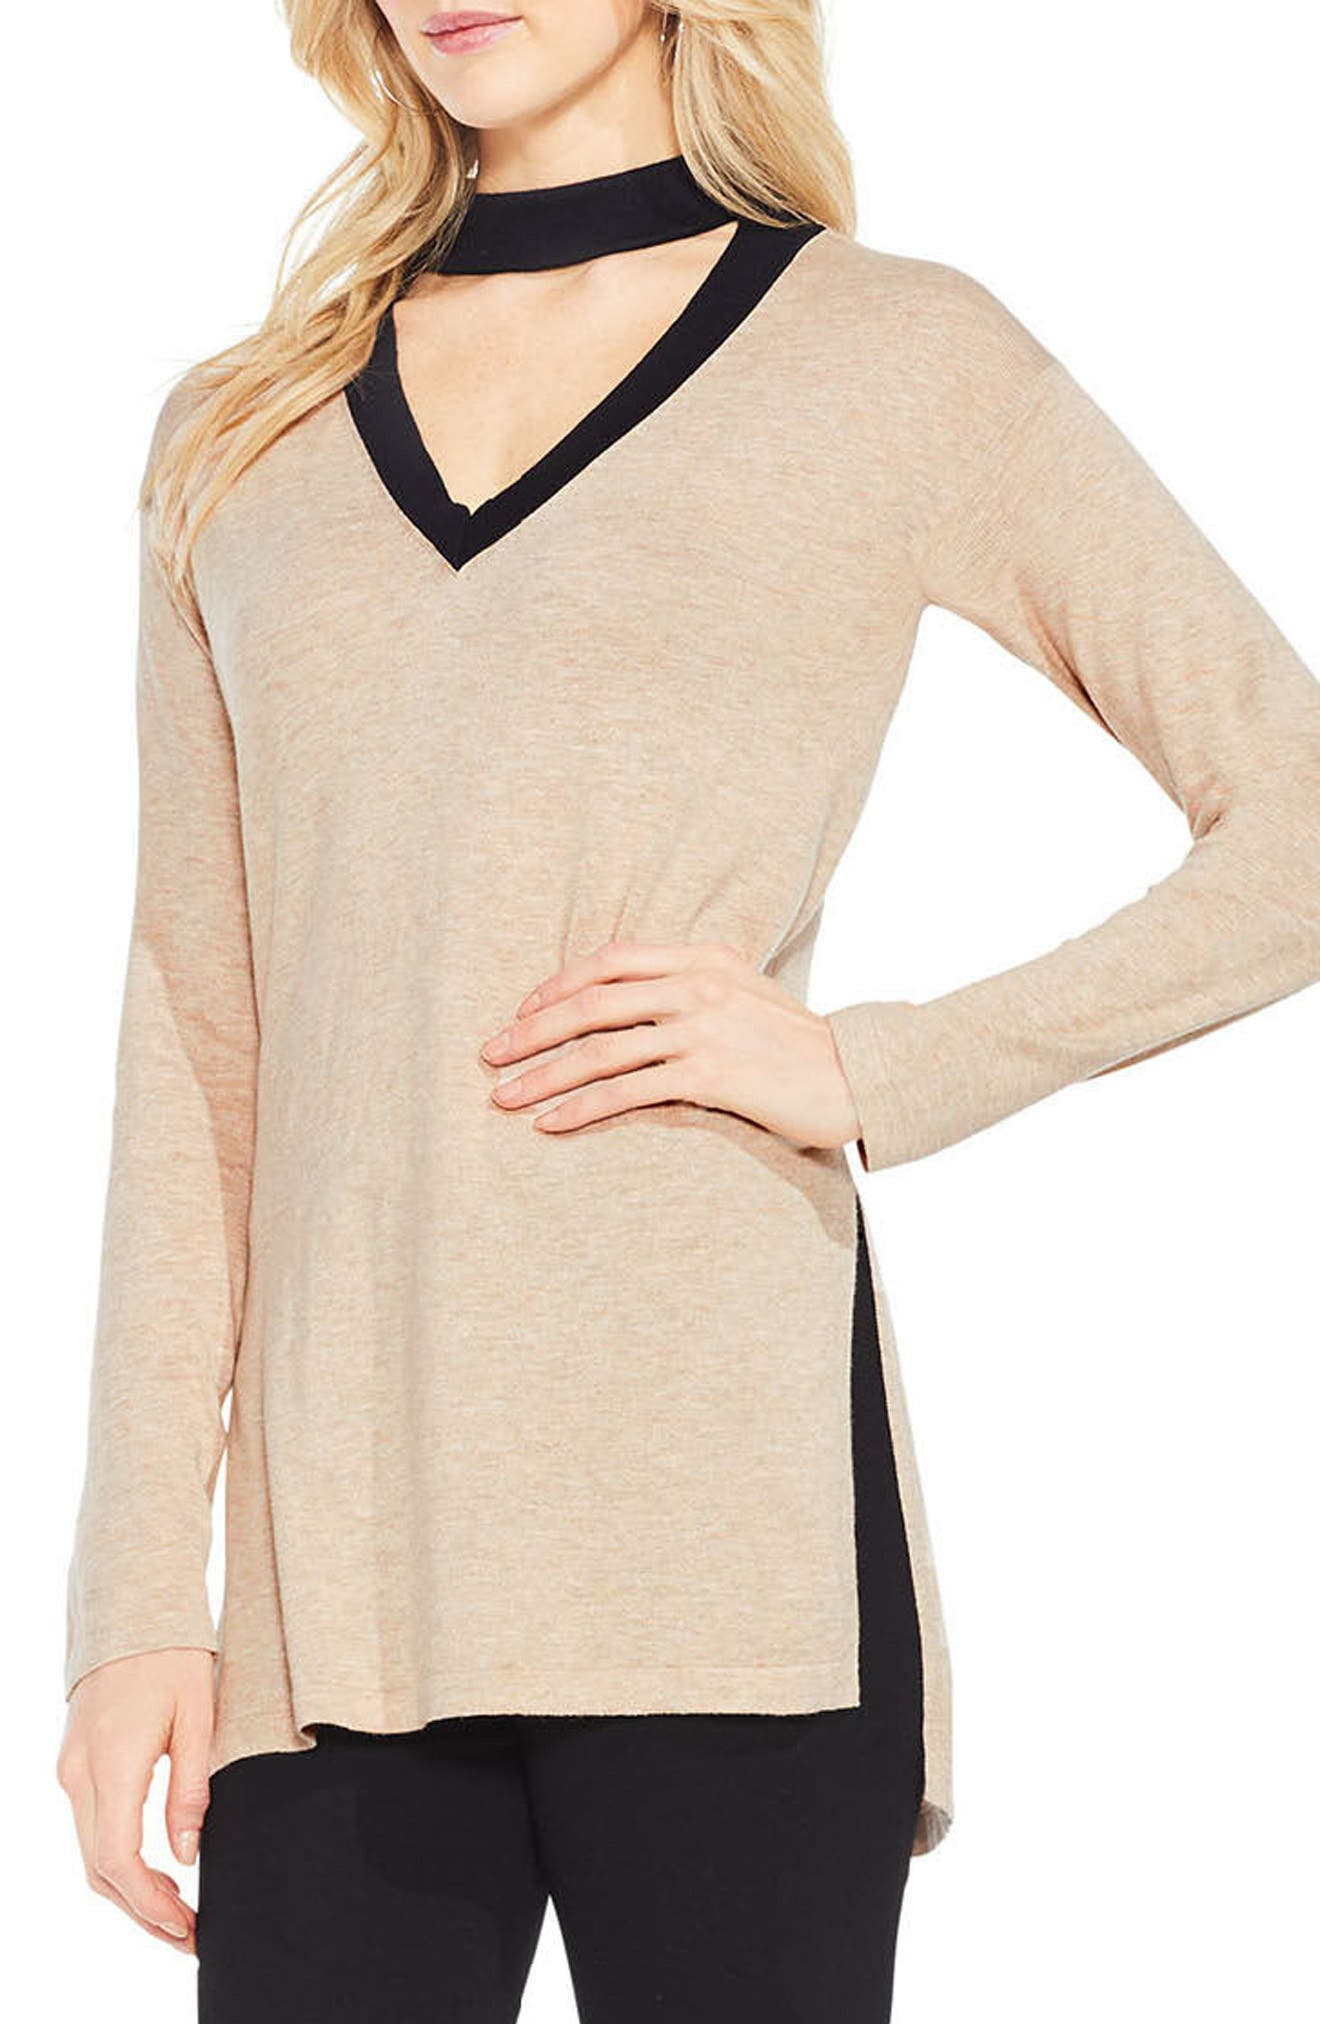 Choker V-Neck Sweater,                             Main thumbnail 1, color,                             Warm Camel Heather